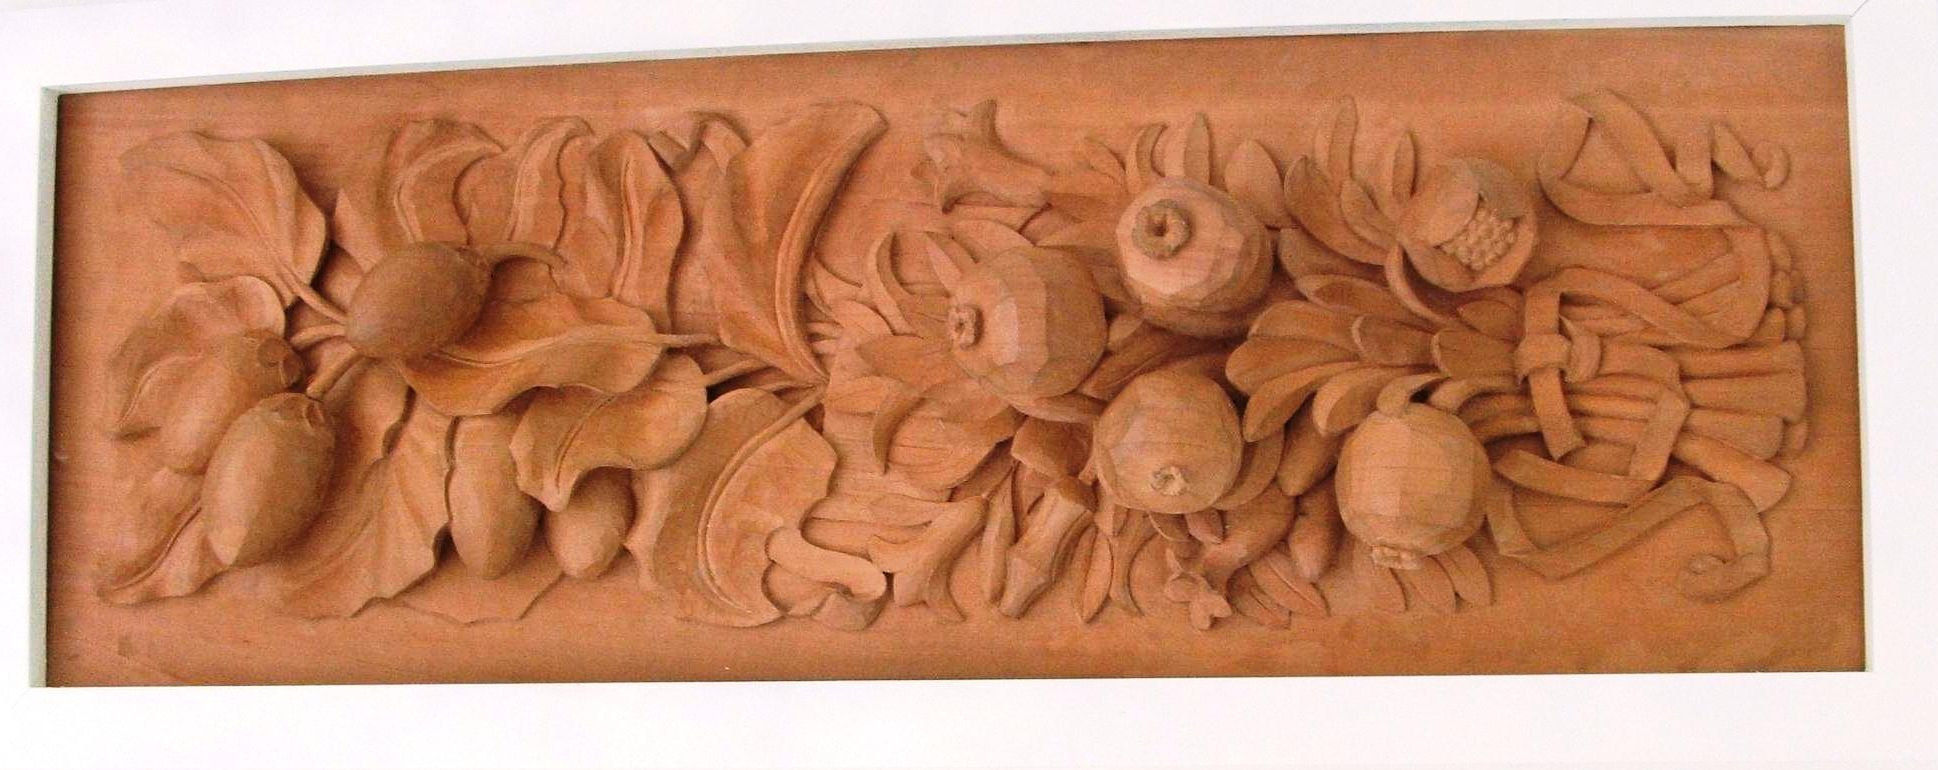 Collection detail wood carving leaf patterns